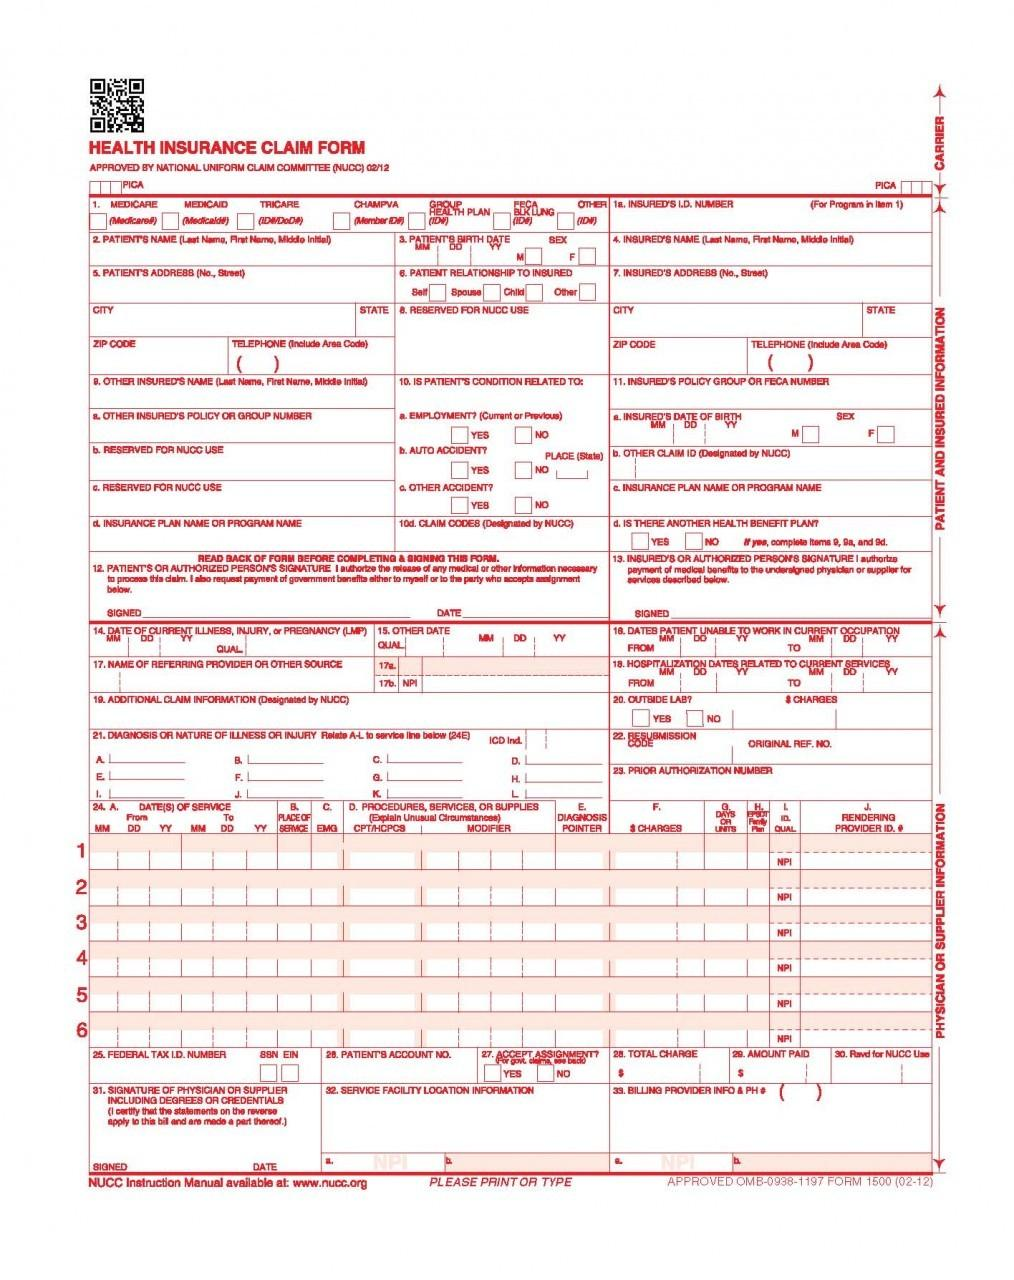 Cms Claim Form Requirements